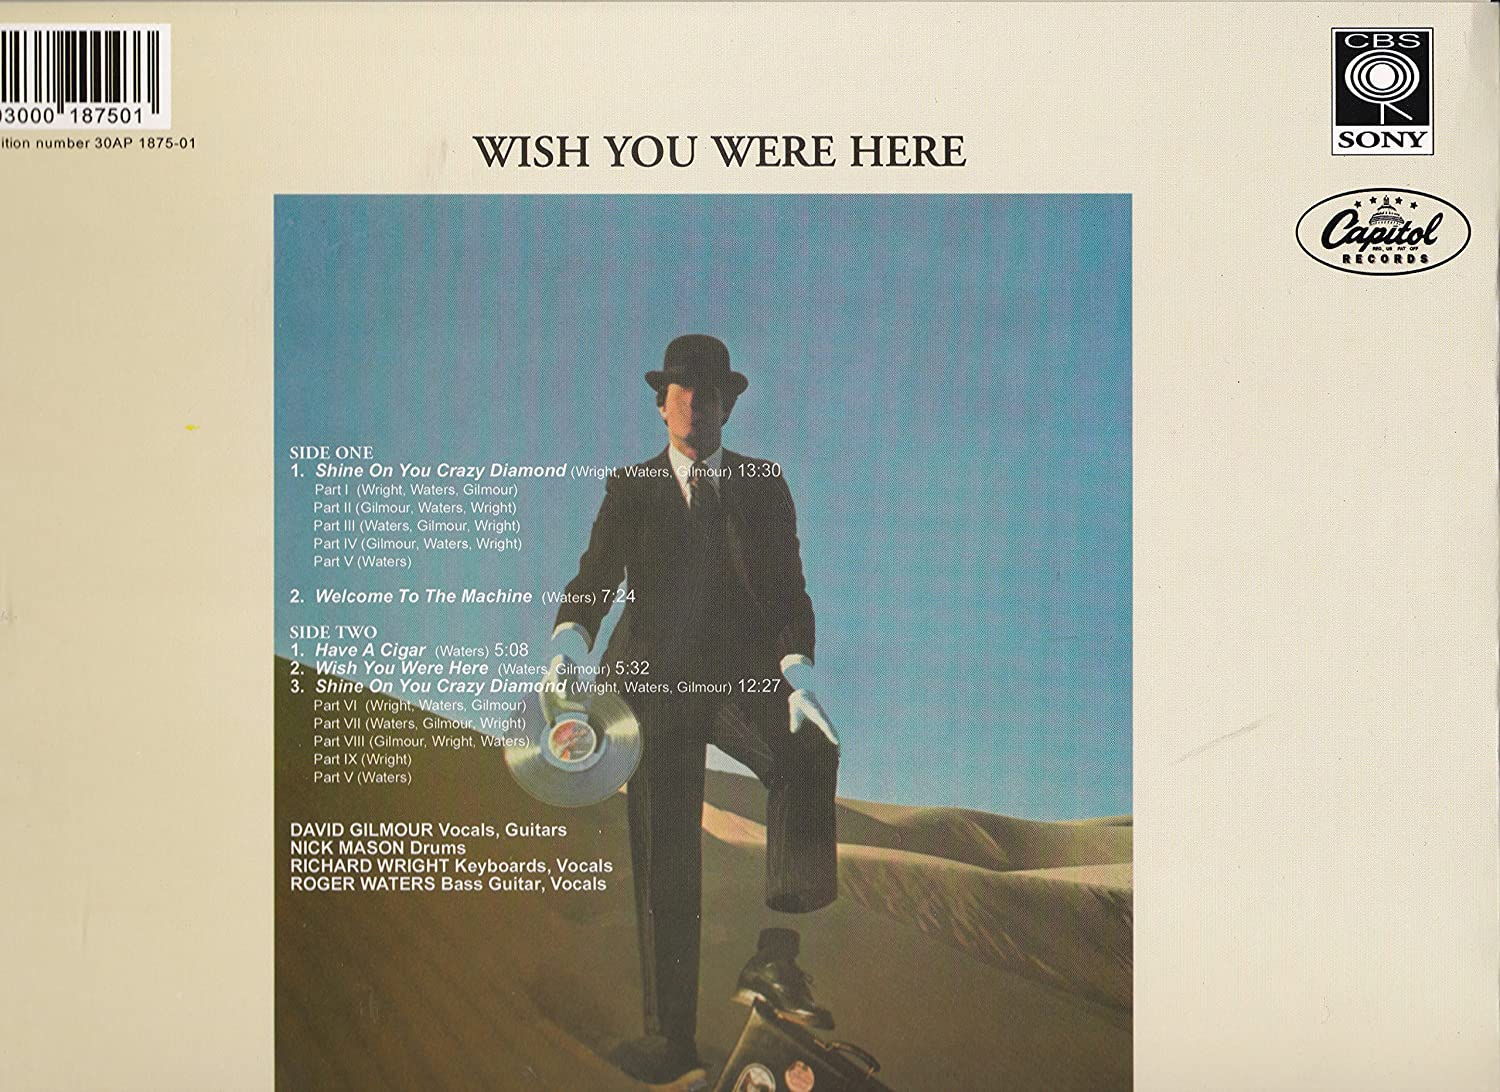 Pink Floyd - Pink Floyd - Wish You Were Here - Red Color Vinyl - 20th Anniversary Edition Reissue - UK Import - Amazon.com Music